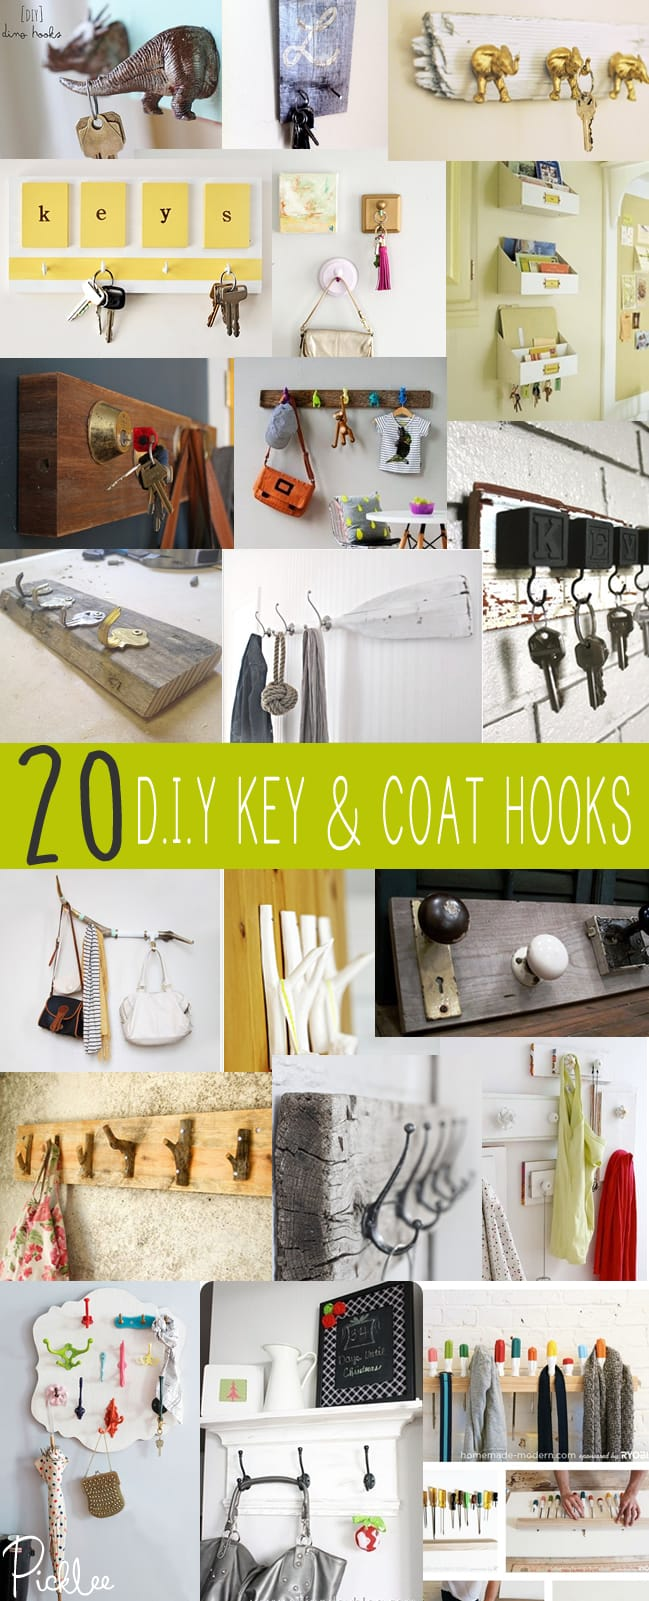 20 diy key-coat hooks